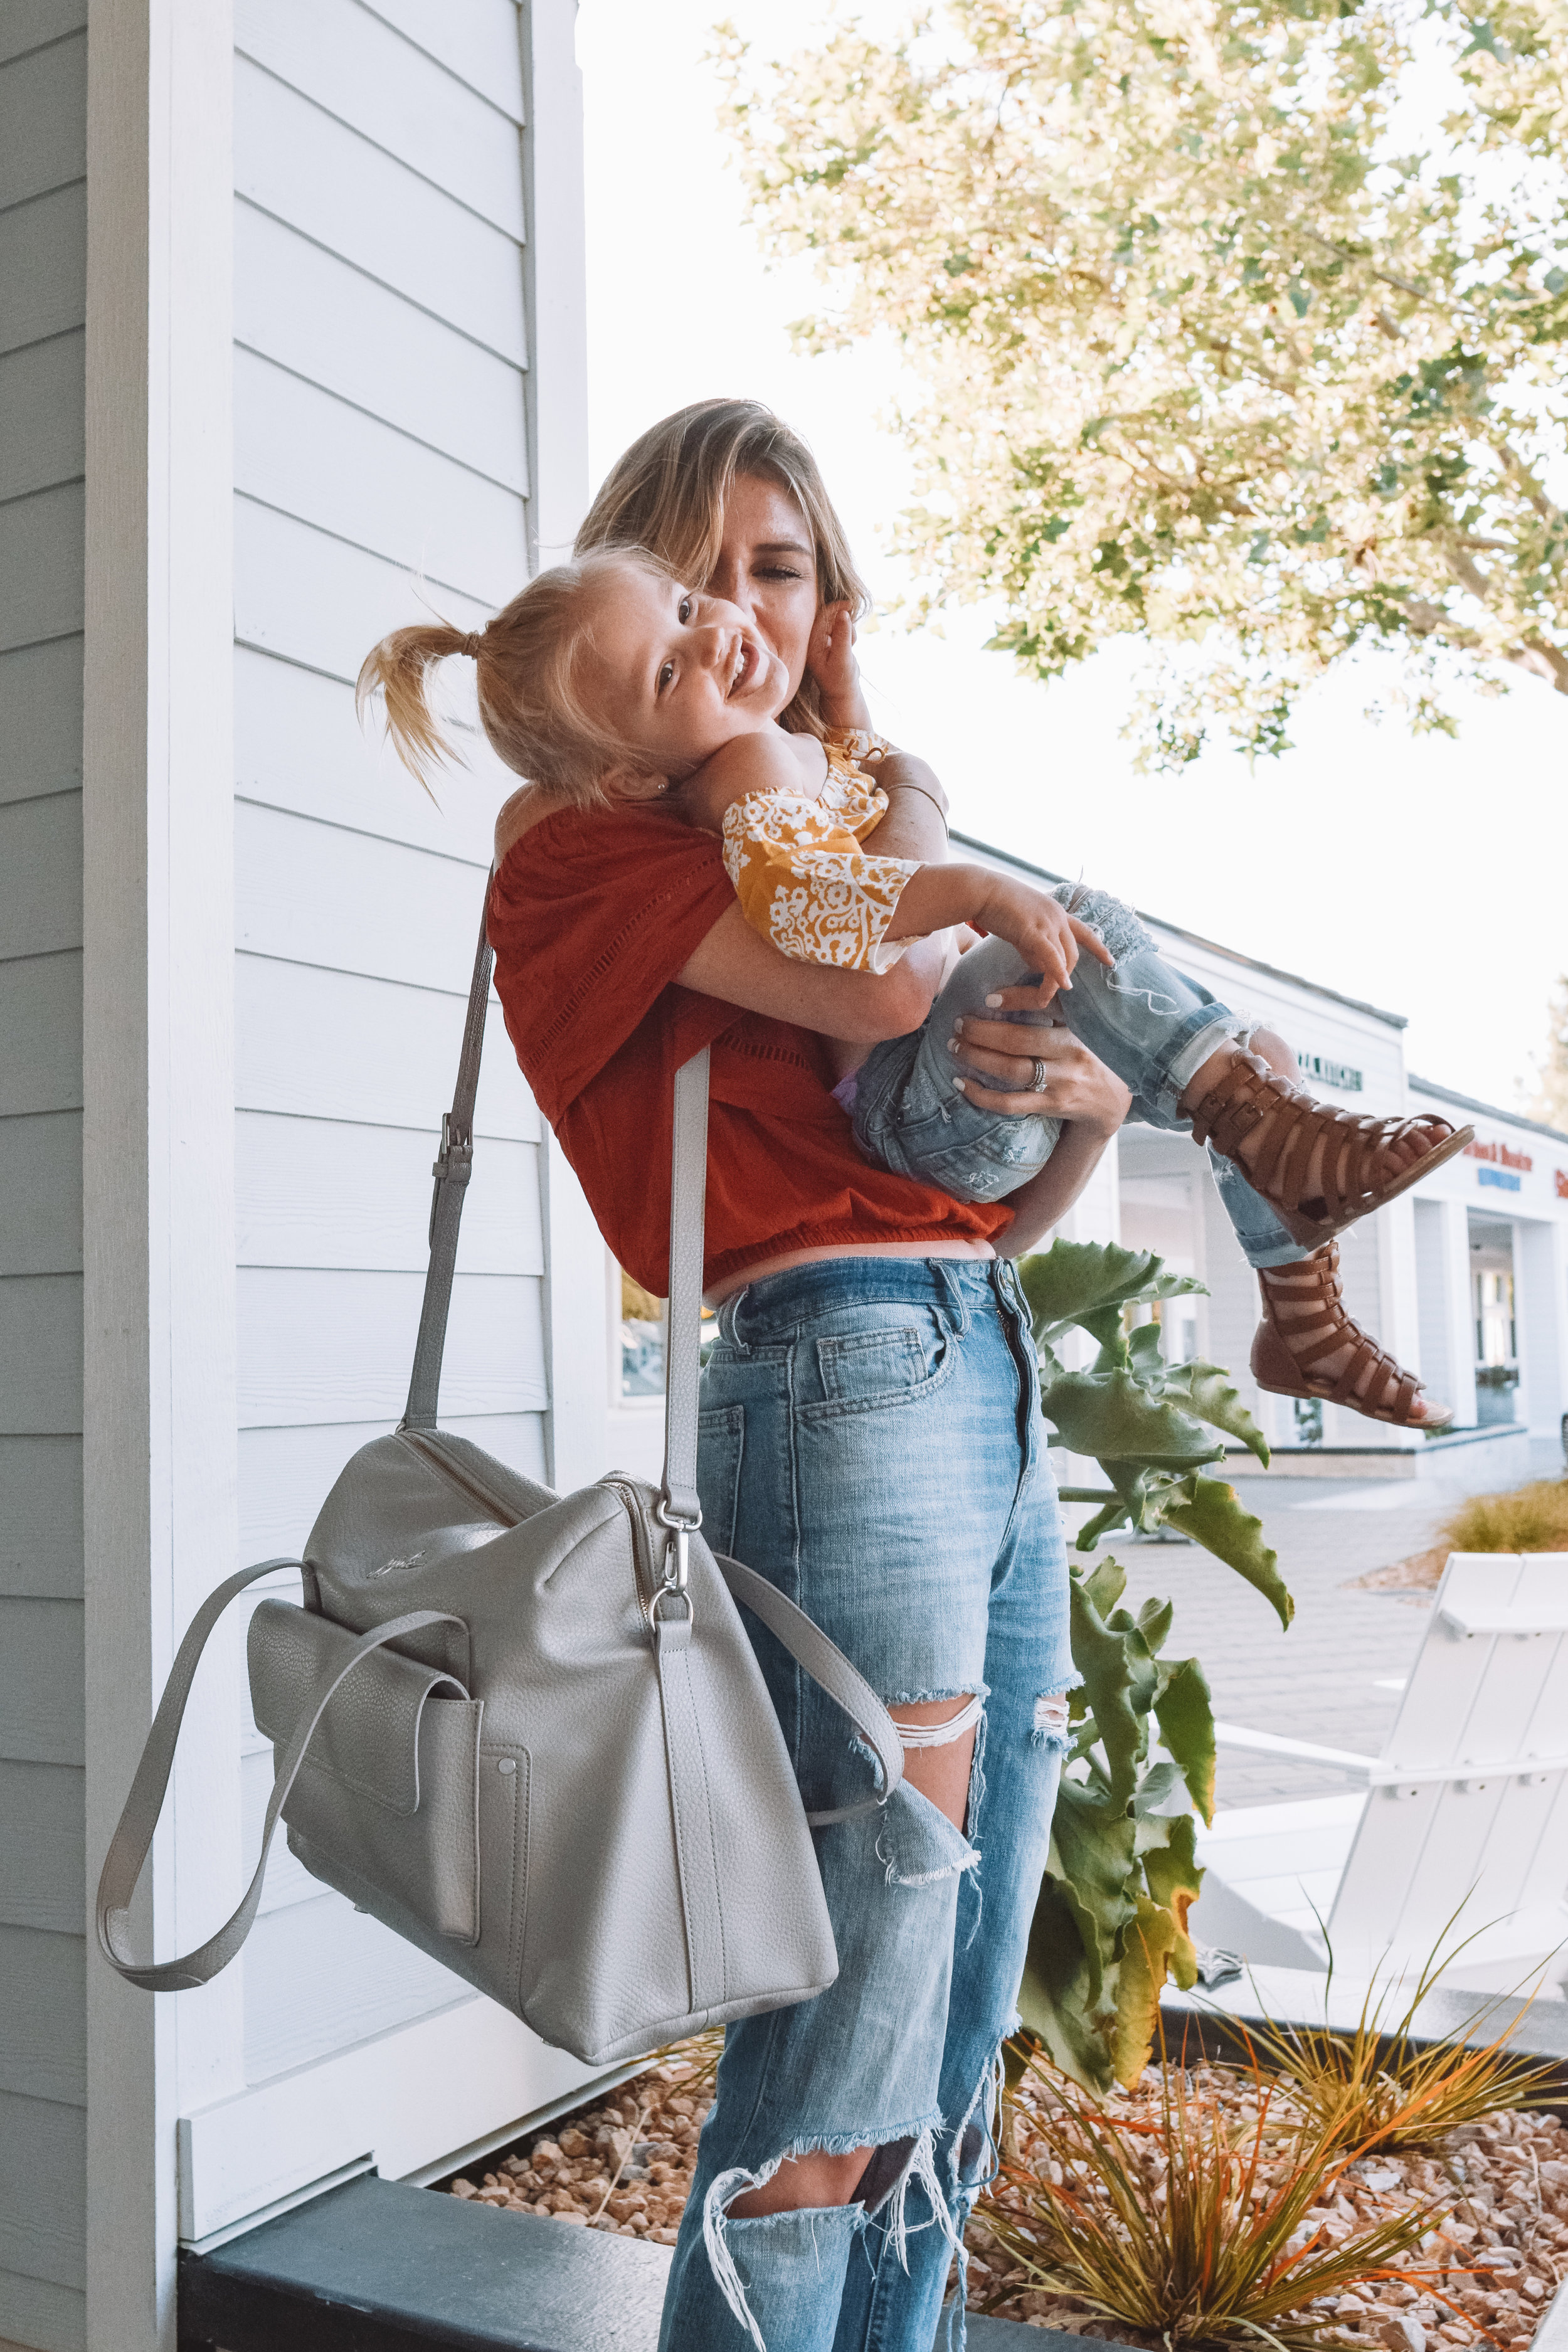 Wherever Weekender Stone - JuJuBe Ever Collection - Leather Diaper Bags